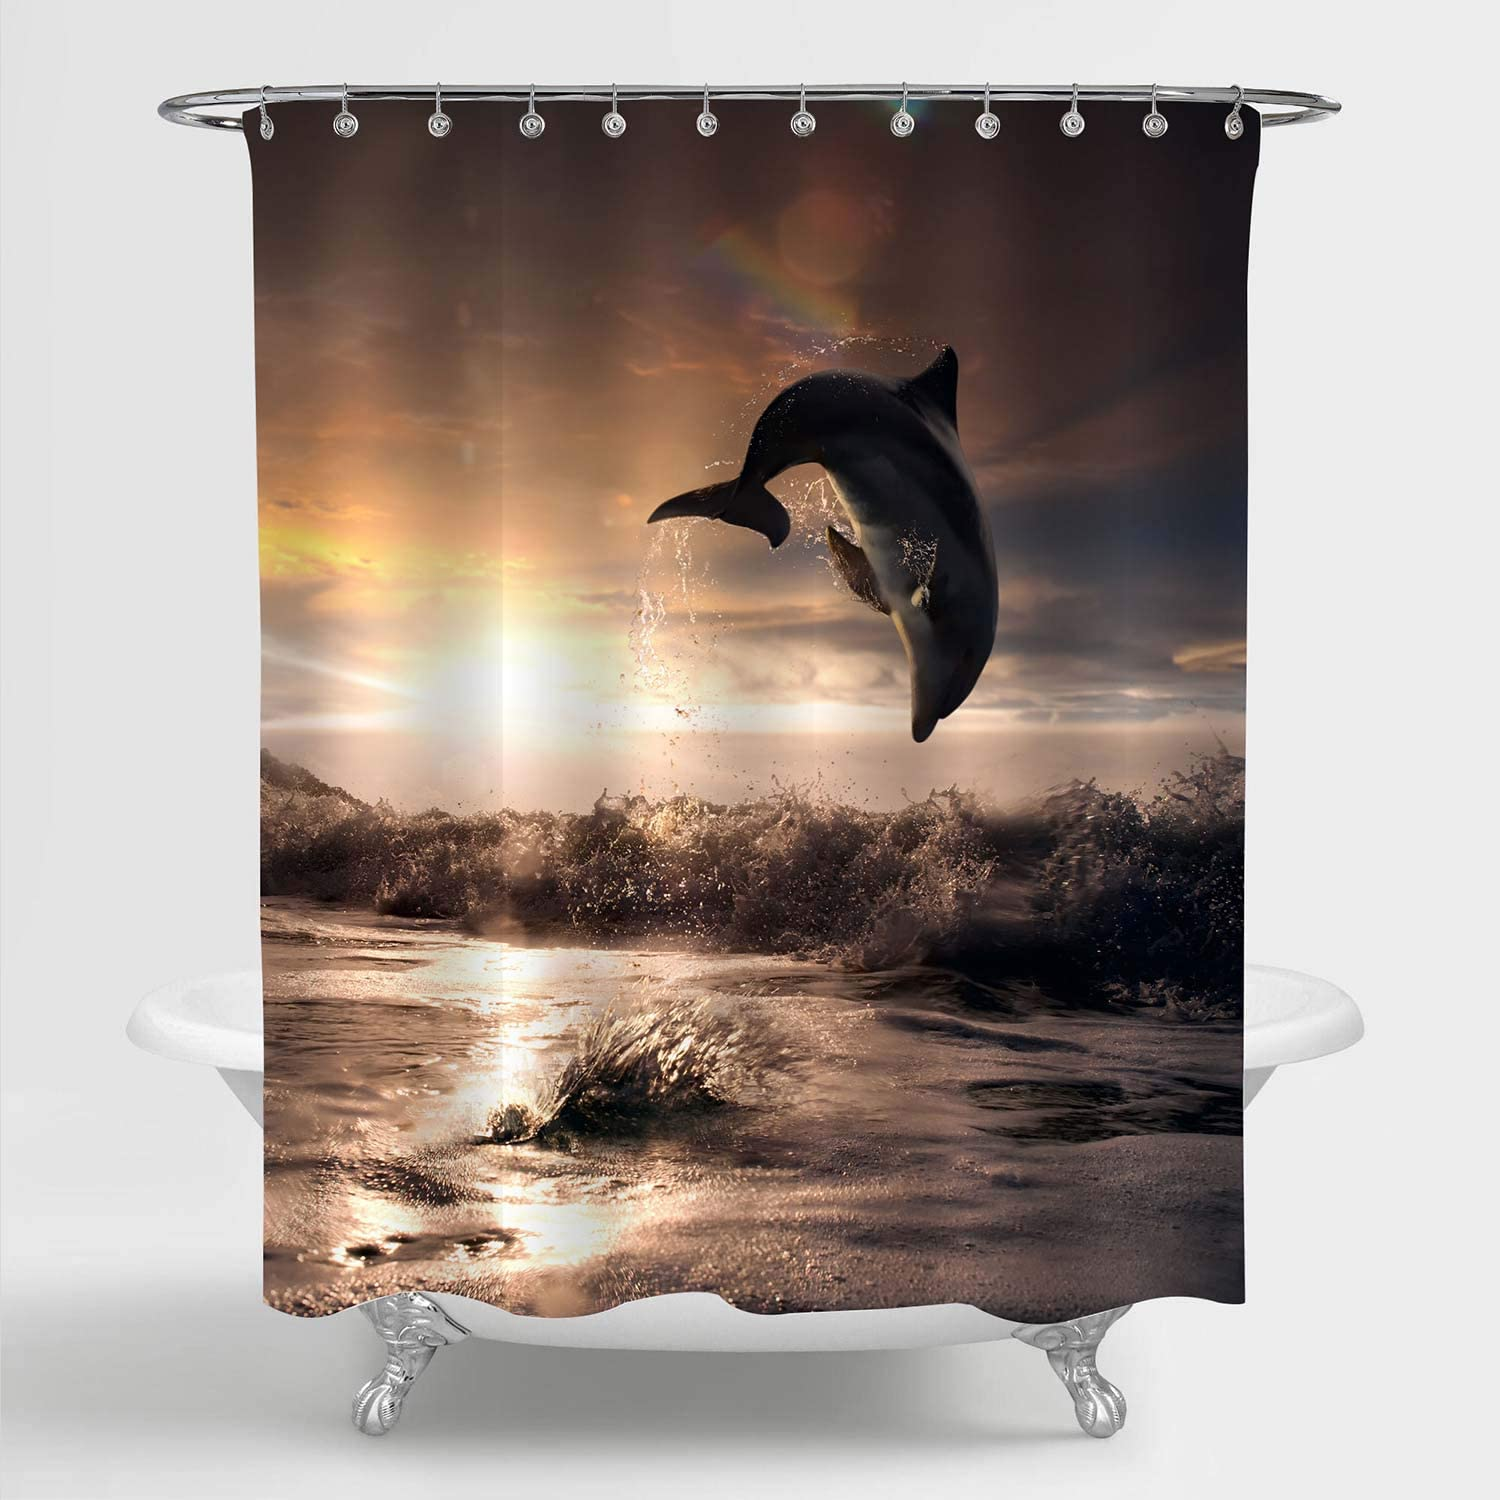 """MitoVilla Beautiful Dolphin Jumping Over Breaking Waves Shower Curtain, Hawaii Pacific Ocean Wildlife Sunset Scenery Photograph Bathroom Accessories for Tropical Themed Home Decor, Gold, 72"""" W x 72"""" L"""